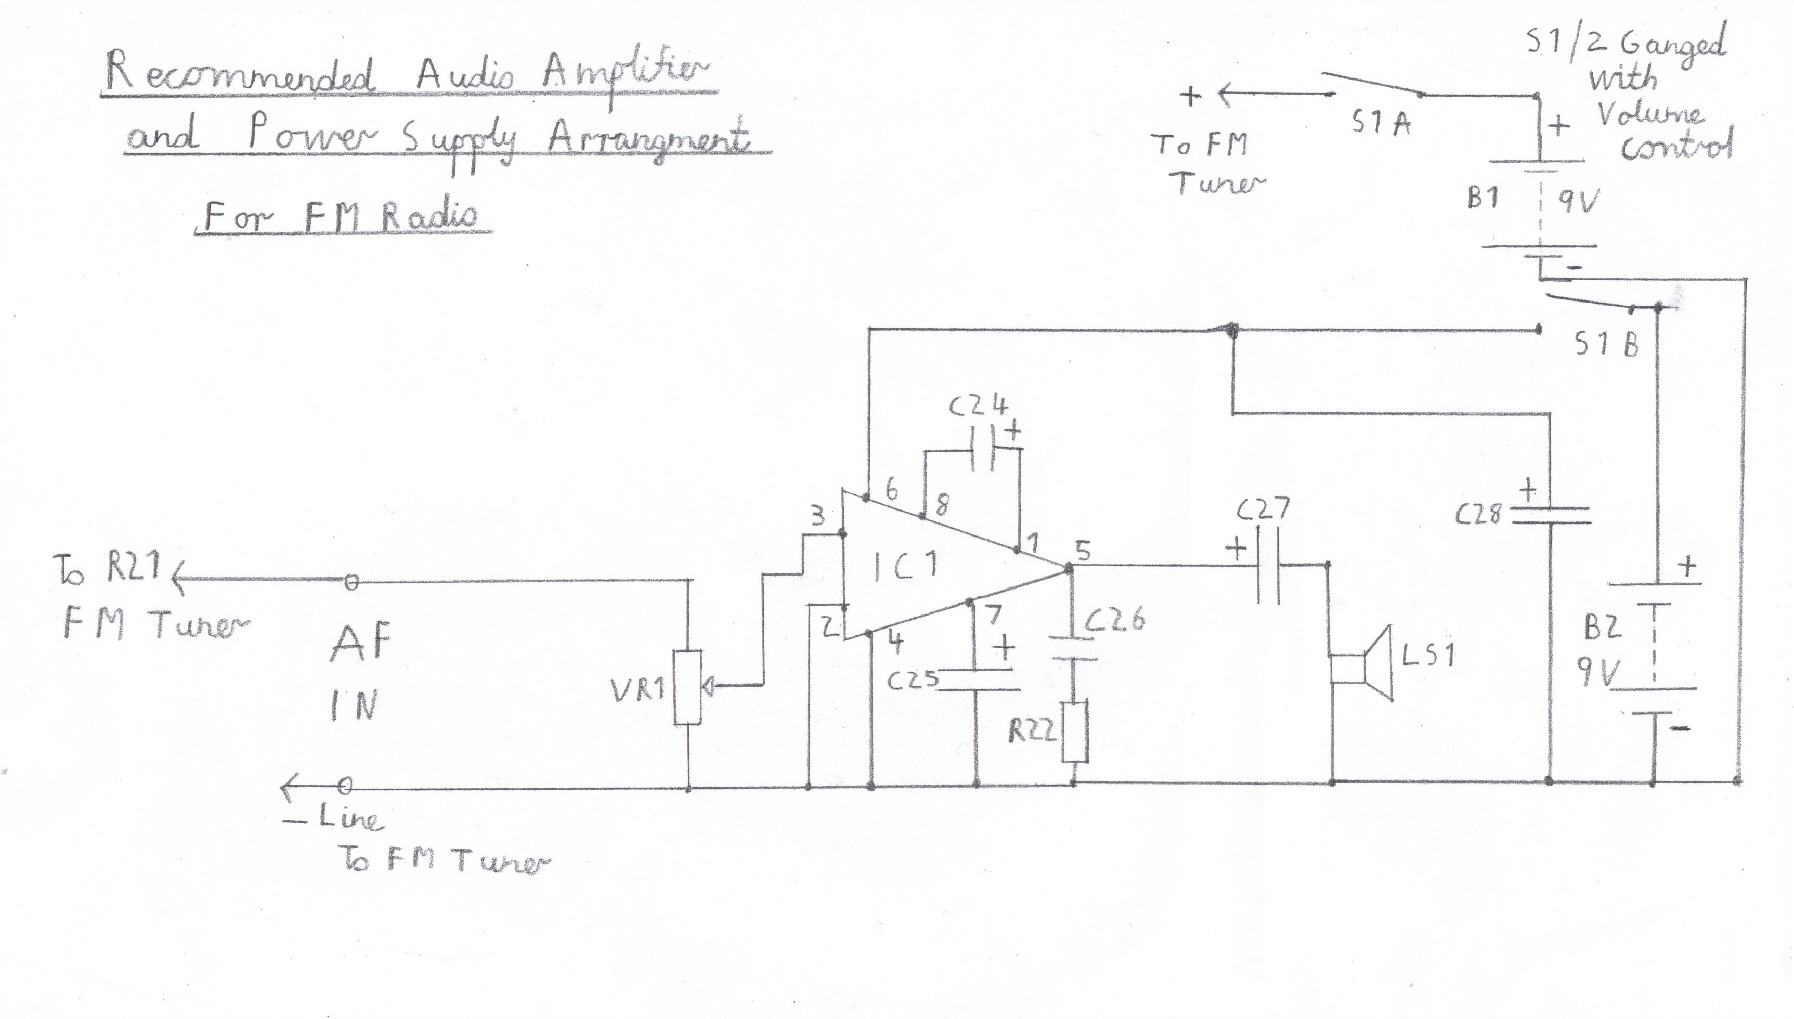 hight resolution of suggested audio amplifier circuit for fm tuner please refer to the component list in the text